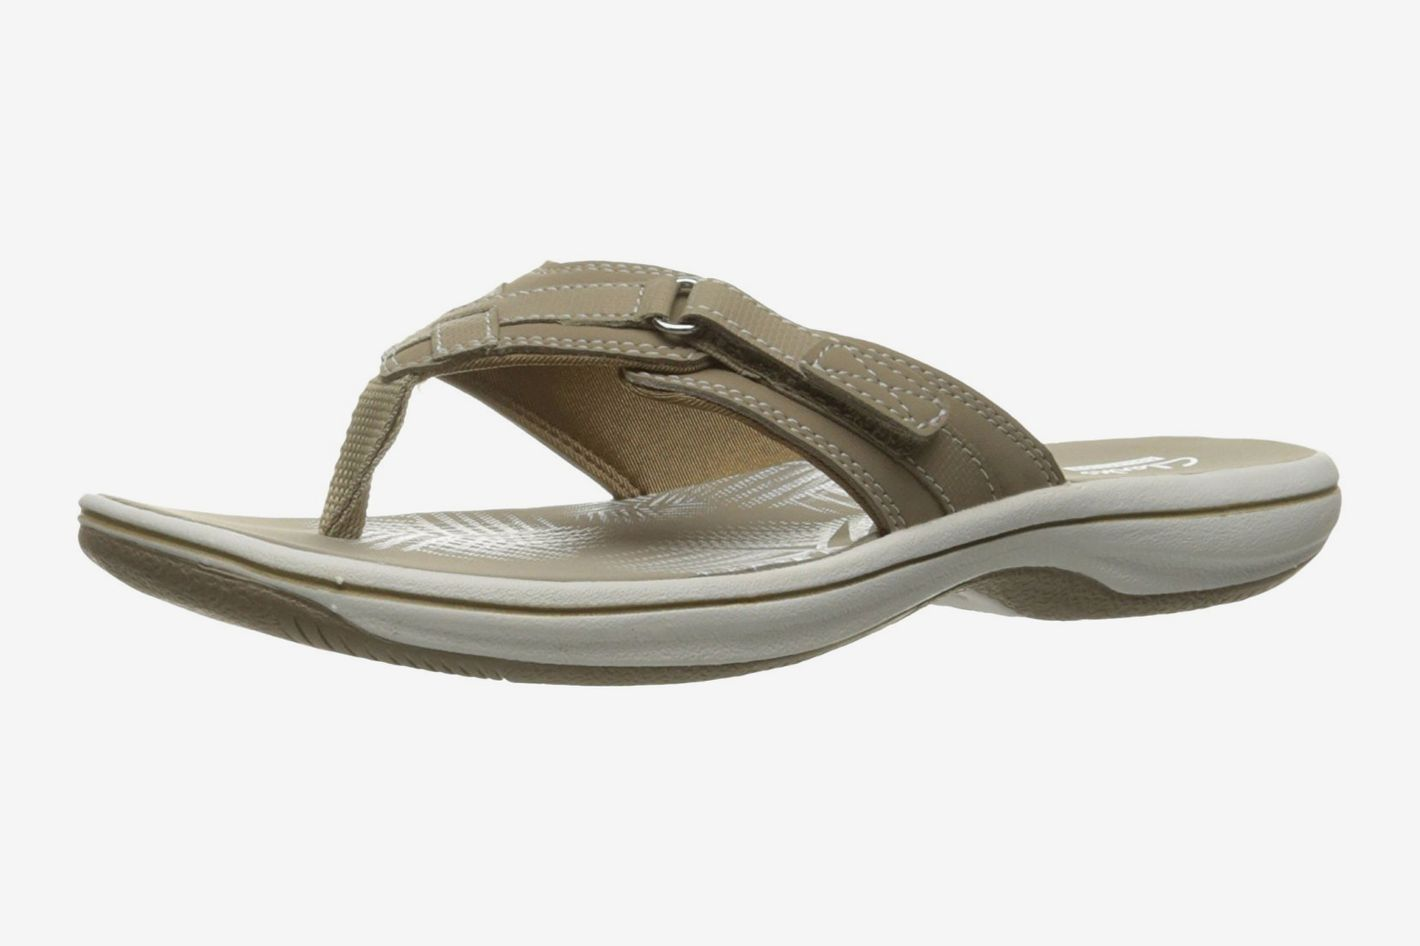 1f25cb60cc865f 11 Best Women s Sandals 2018 — Flip-flops